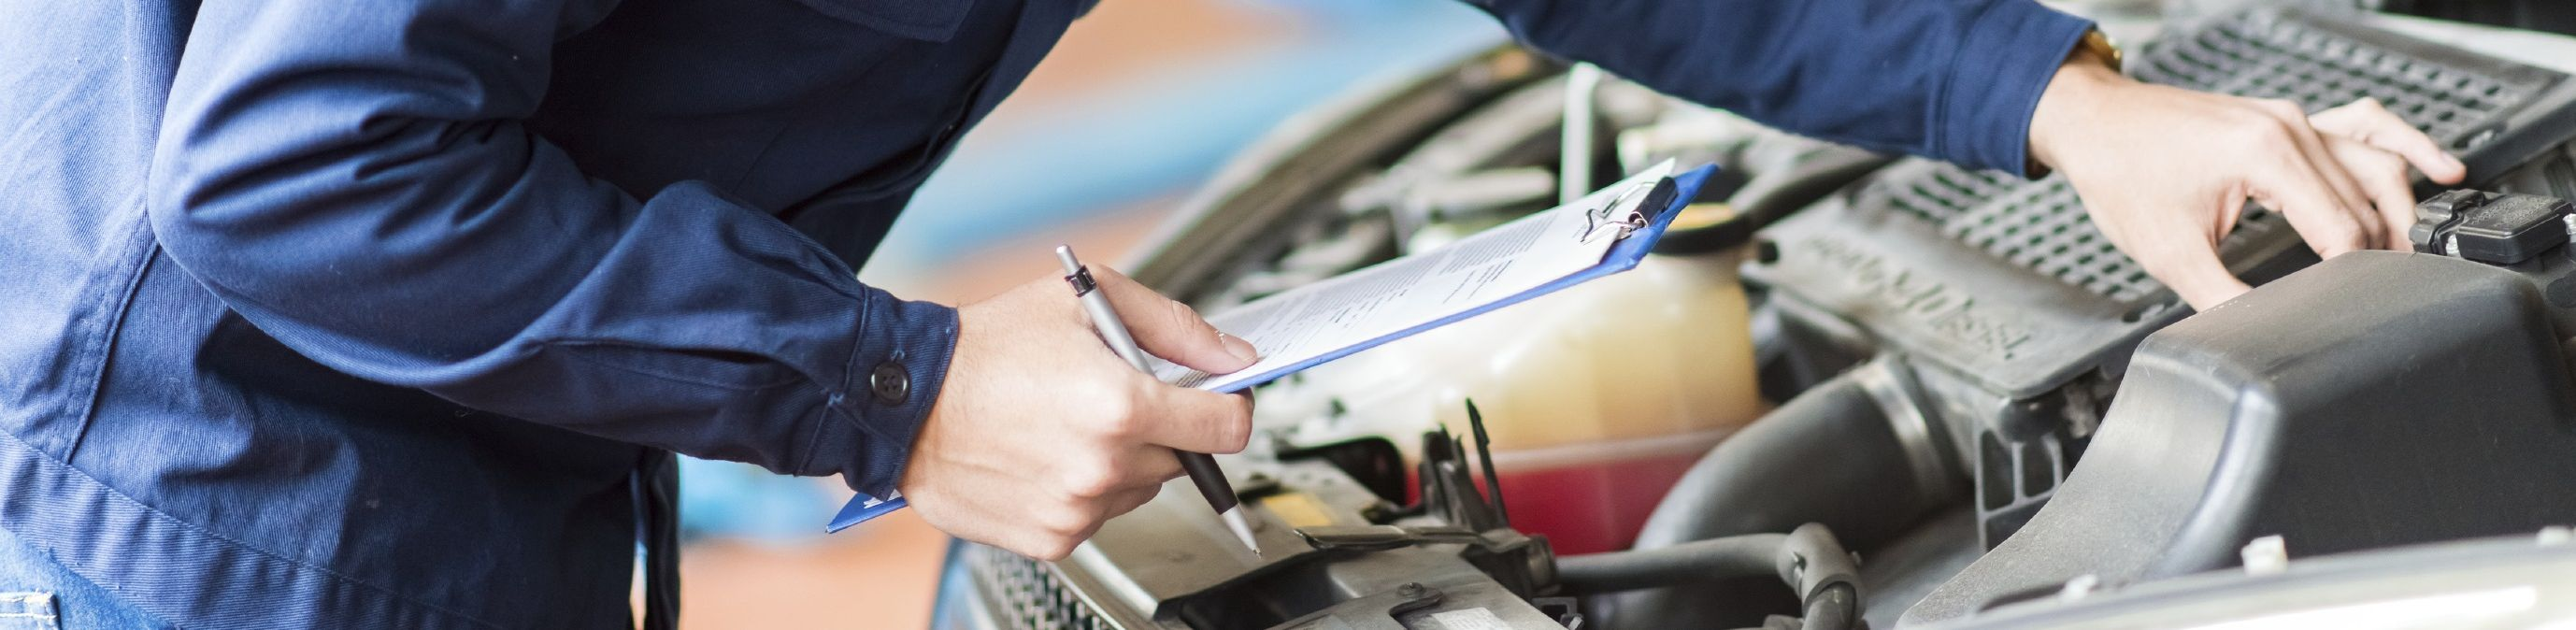 Have Your Battery Checked at Pohanka Honda in Capitol Heights, MD